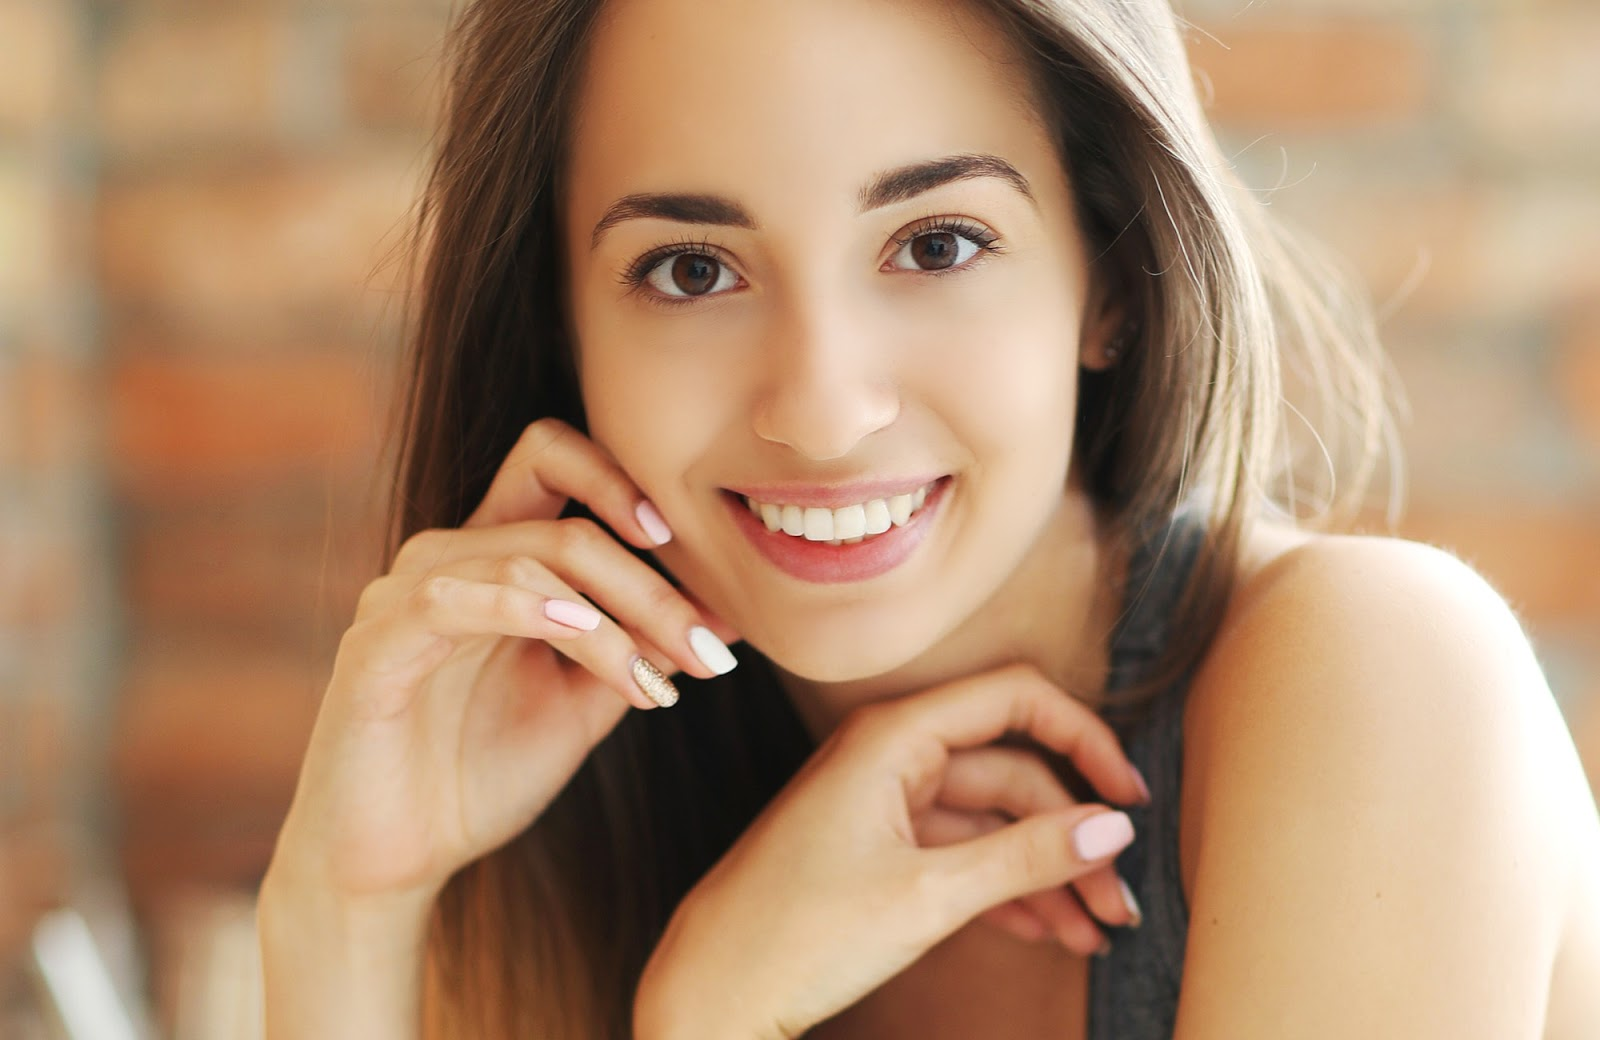 Achieve Better Skin: 6 Ways to Improve Skin Tone and Texture